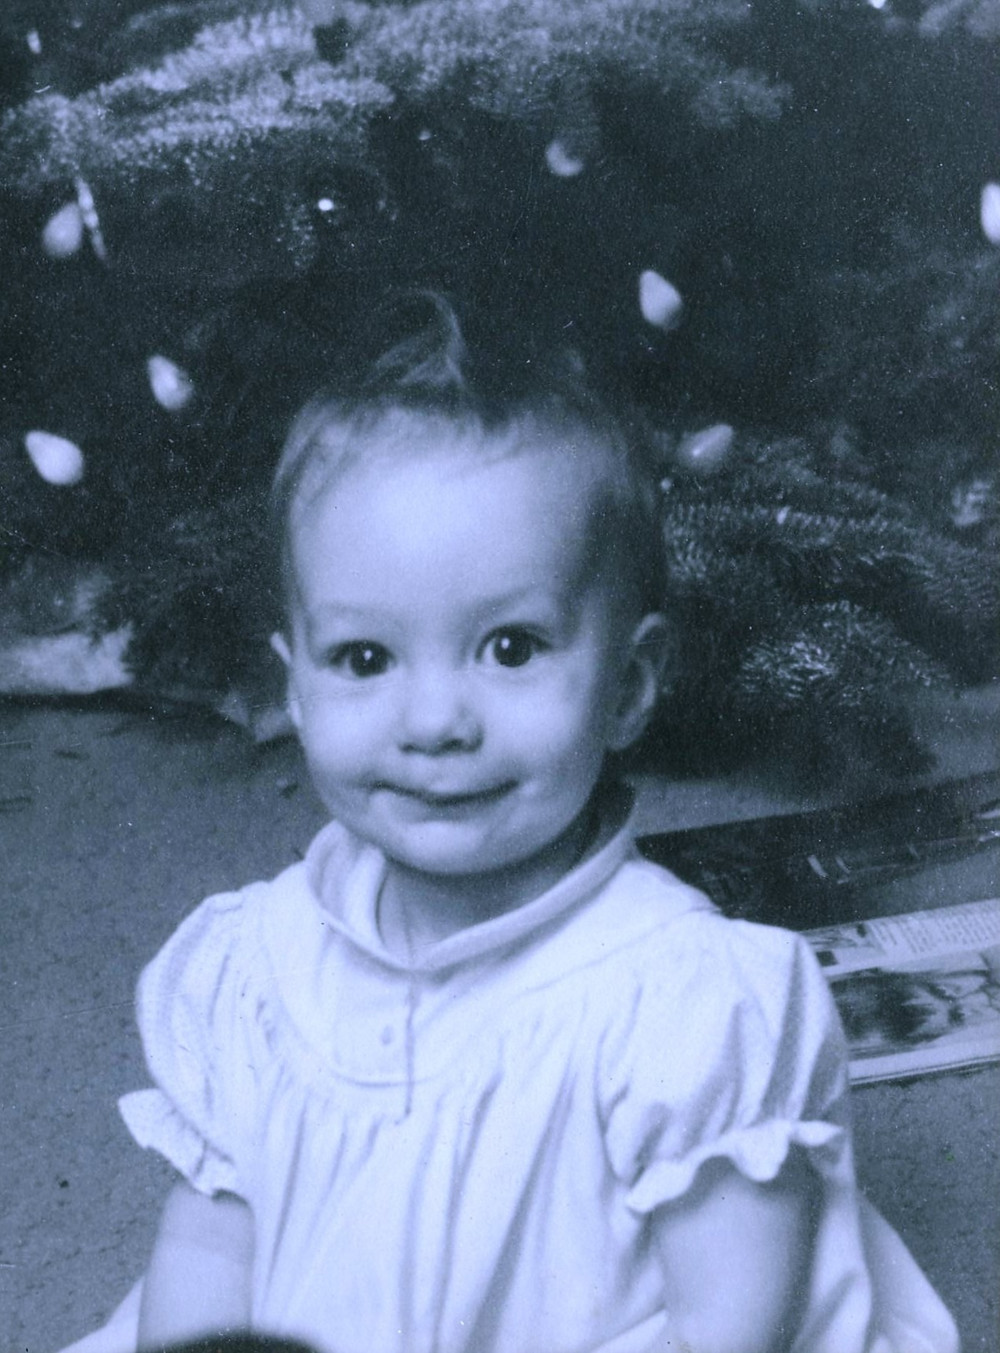 Marie Gettel-Gilmartin in front of Christmas tree